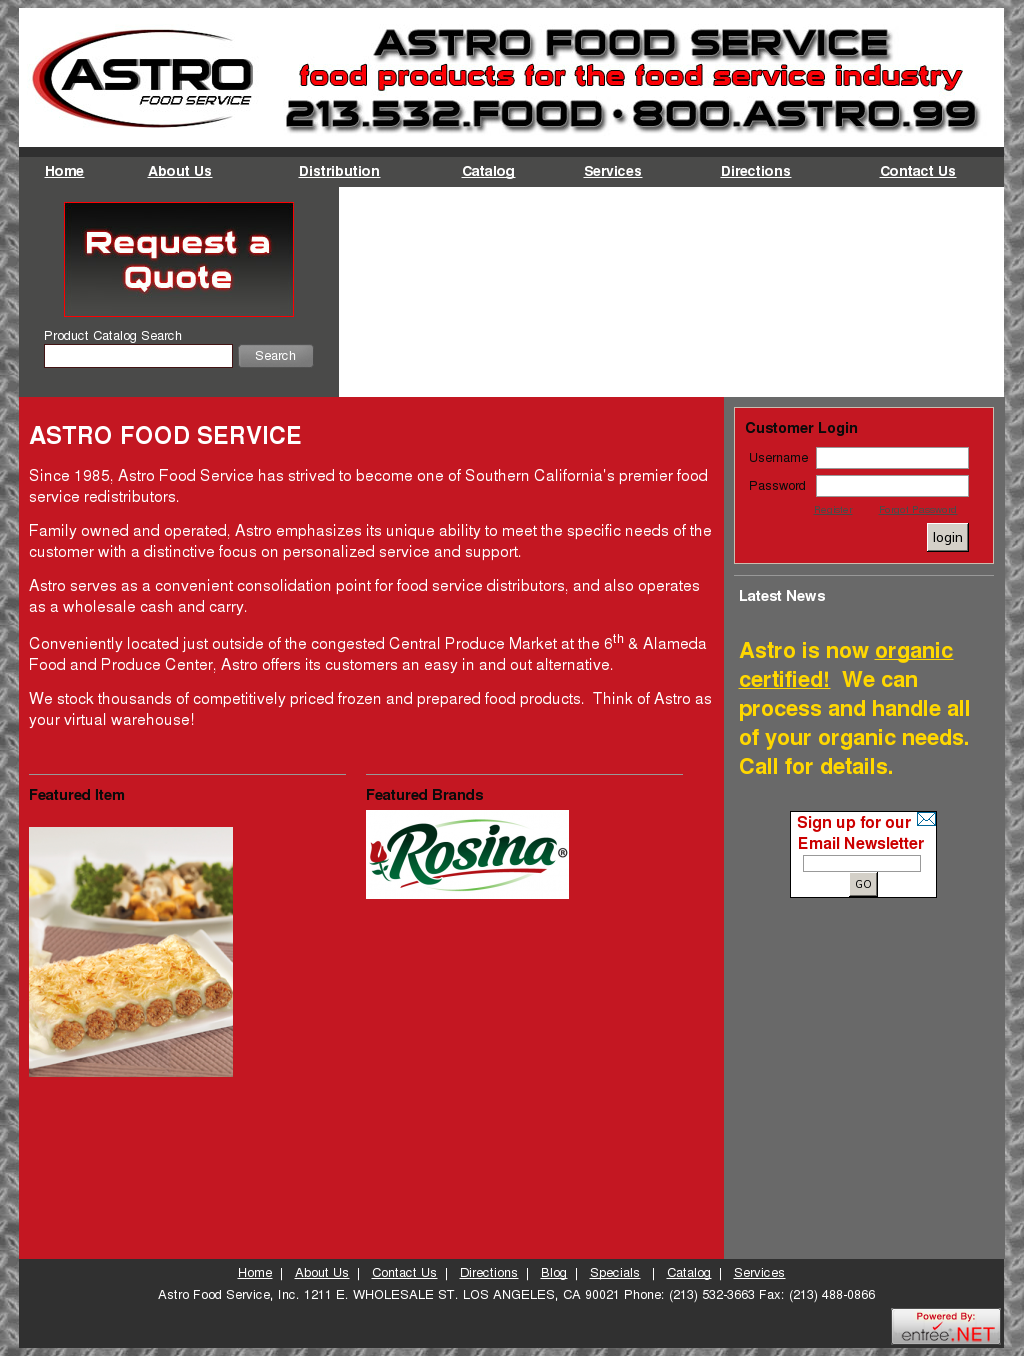 Astro Food Service Competitors, Revenue and Employees - Owler